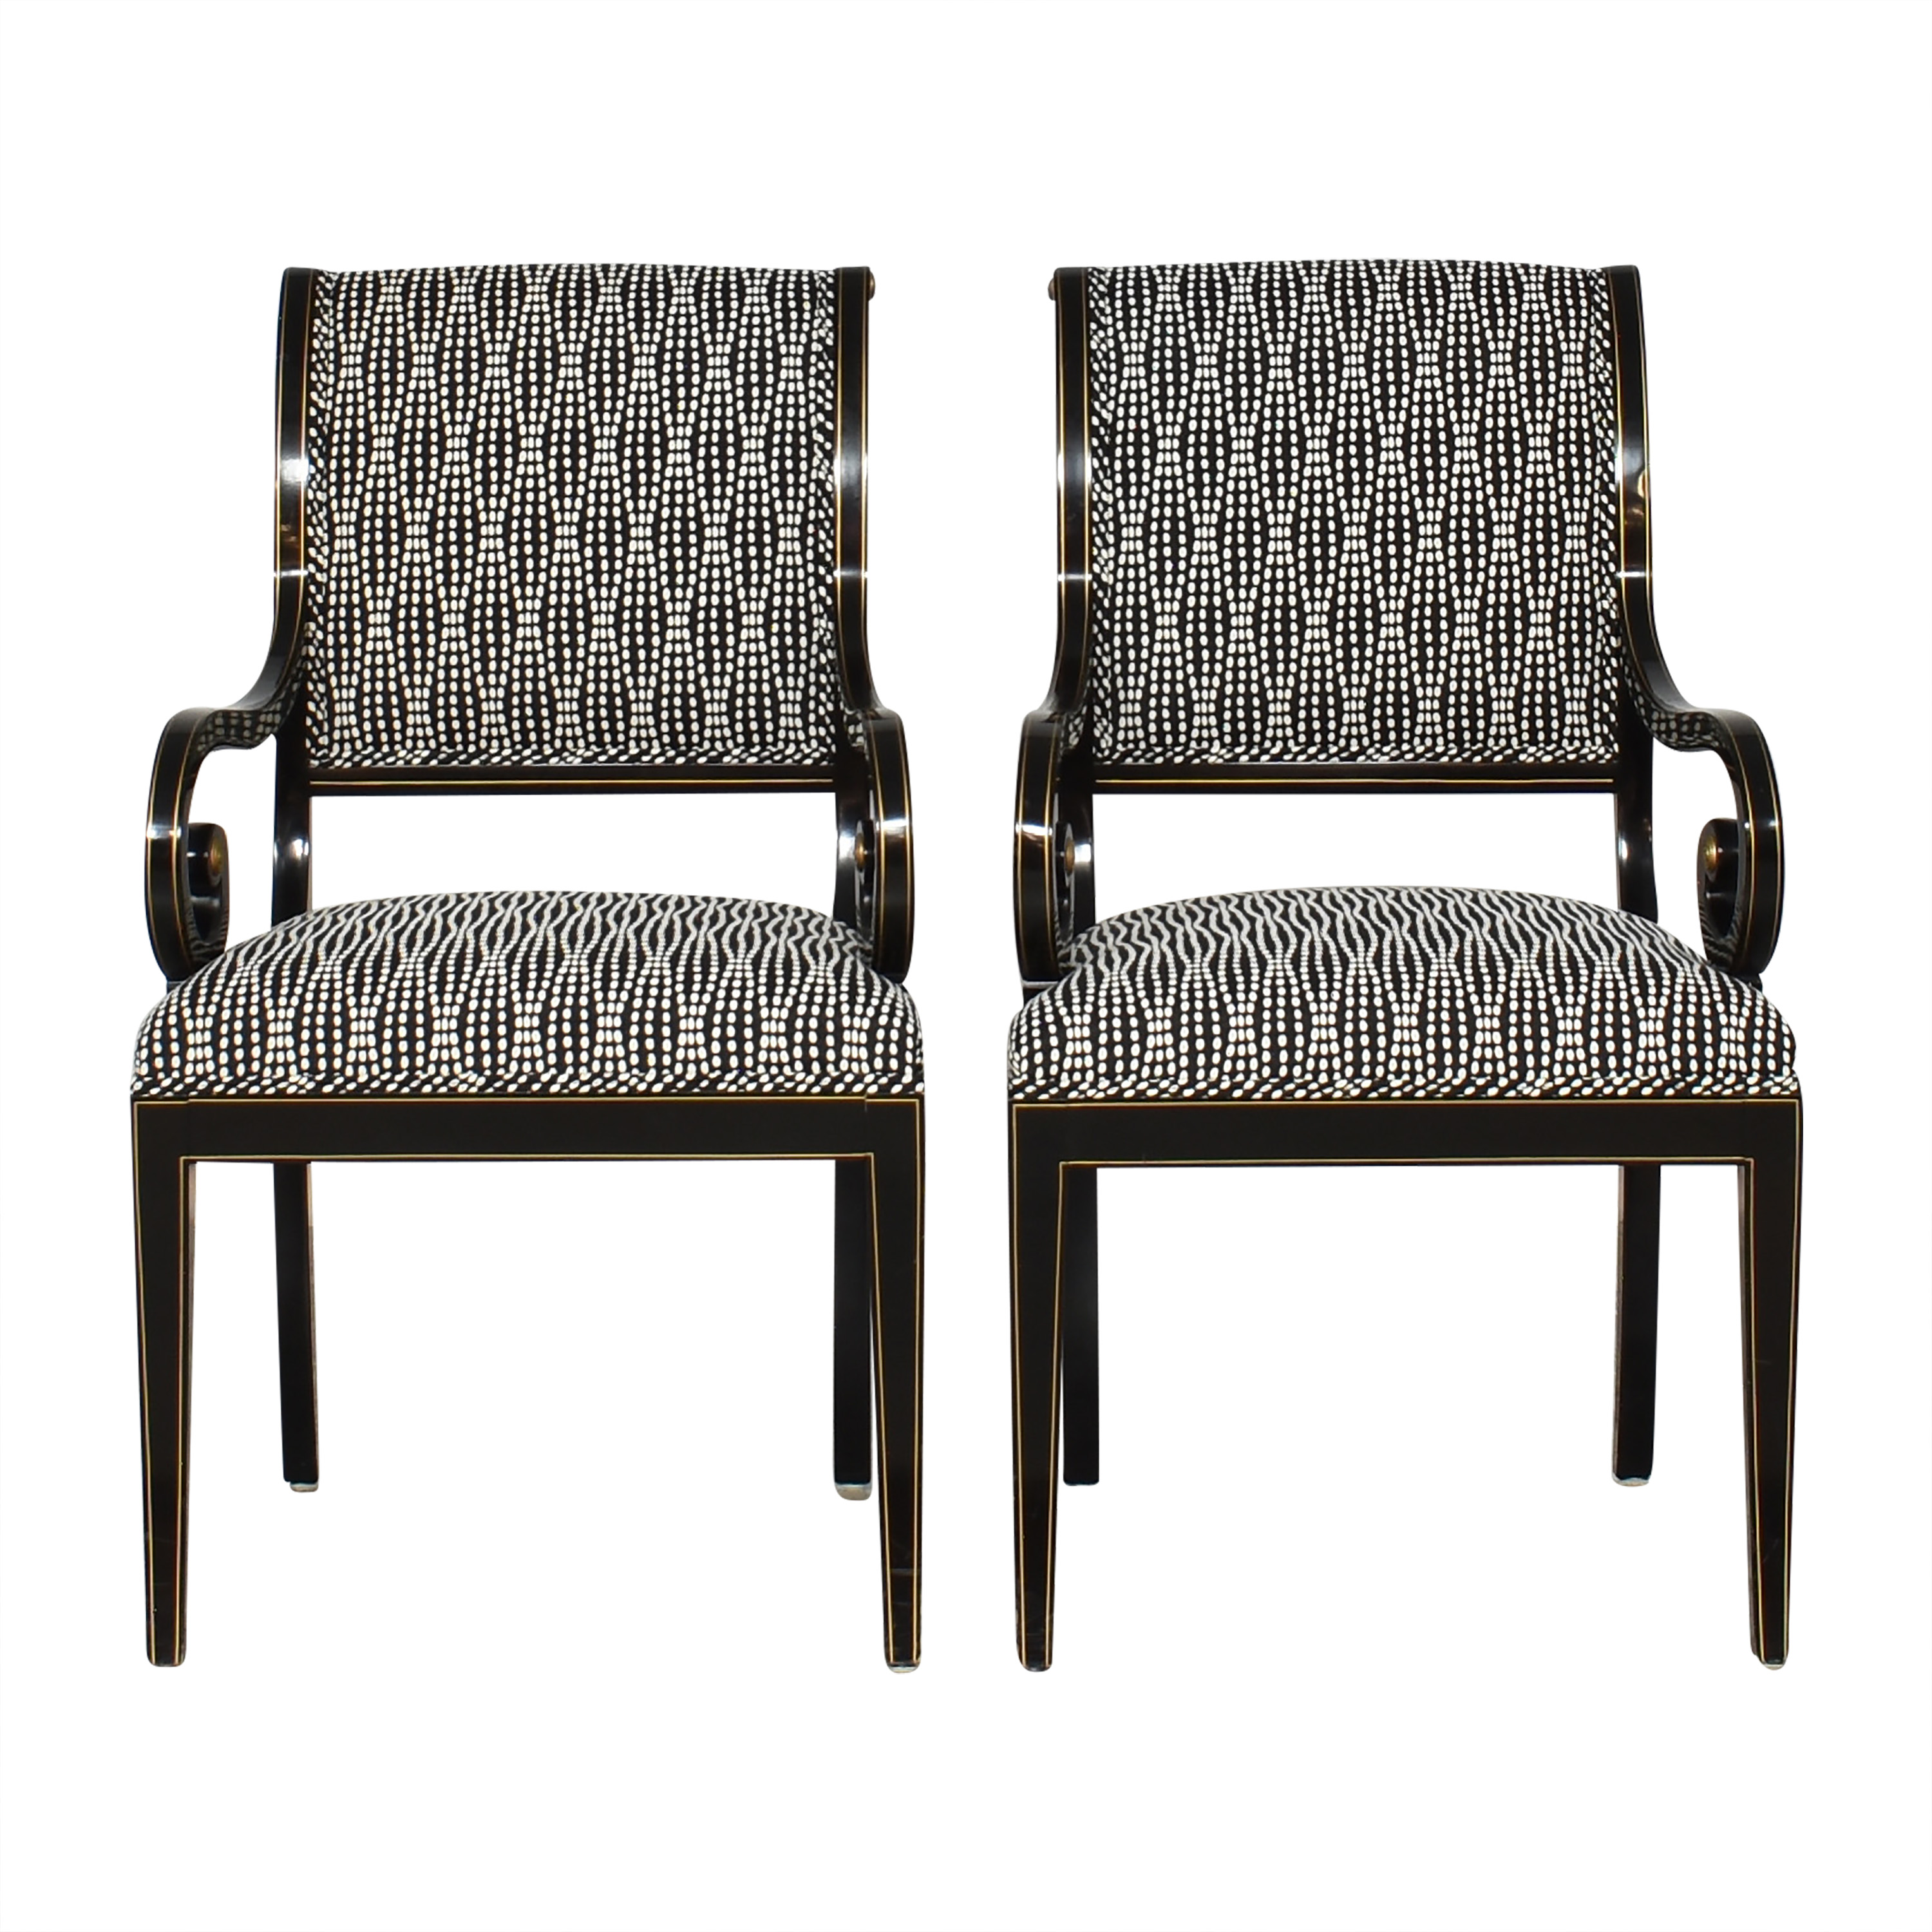 Kindel Upholstered Dining Arm Chairs sale